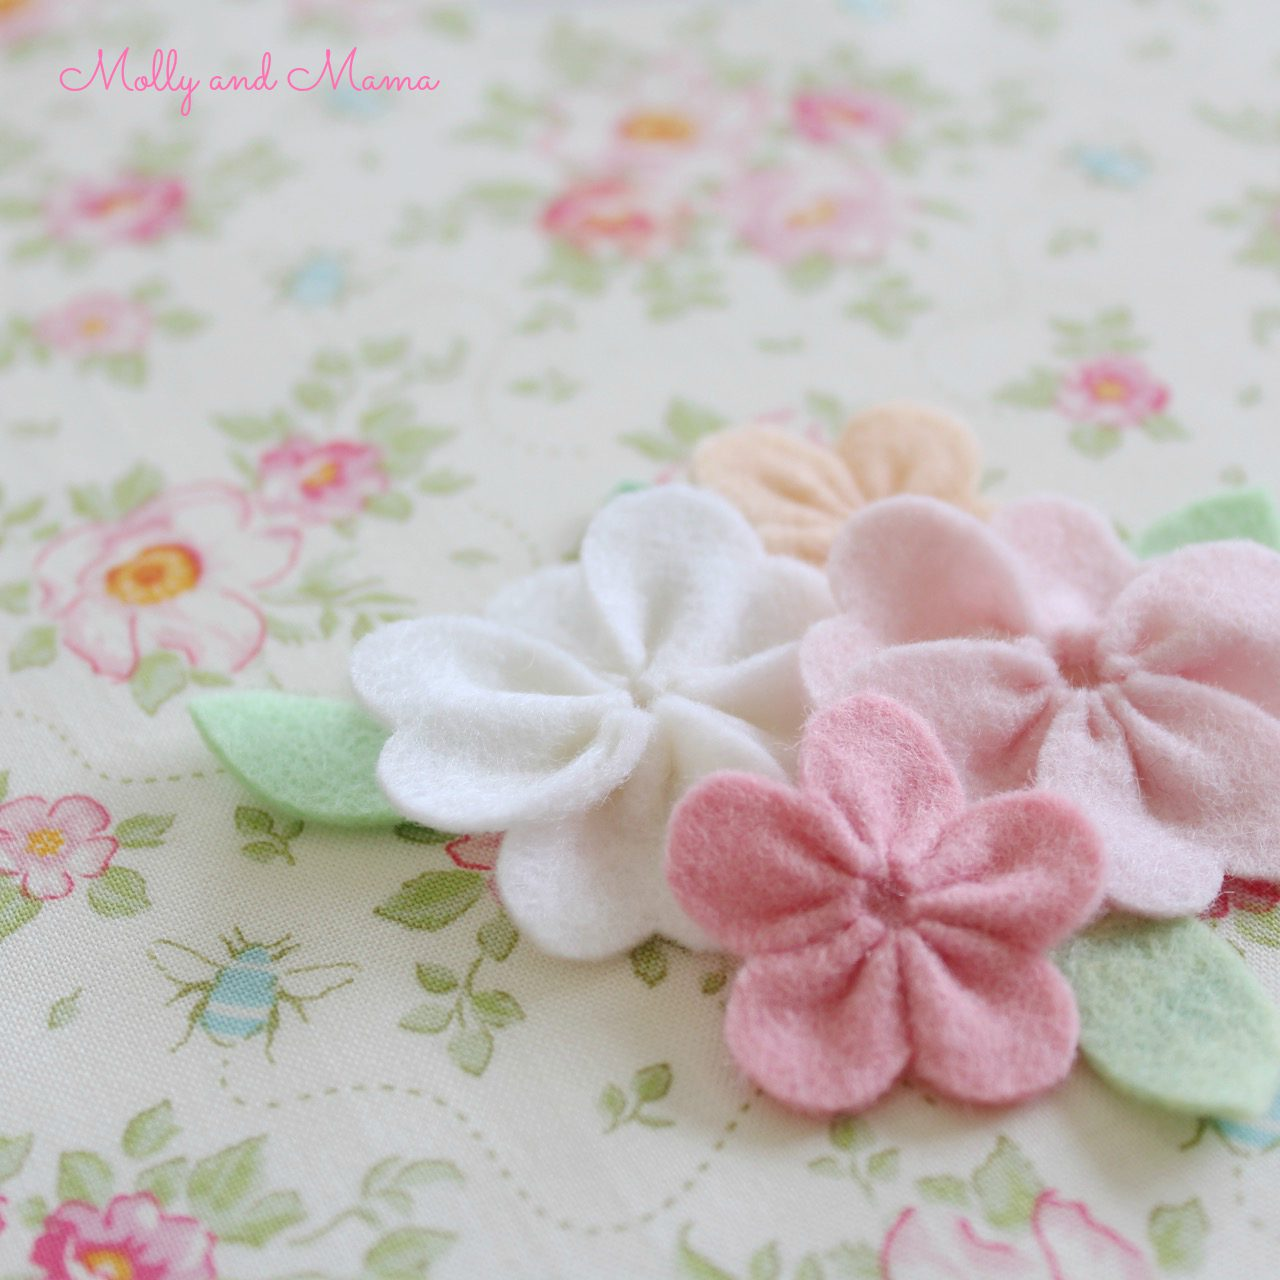 Felt flowers and pretty florals